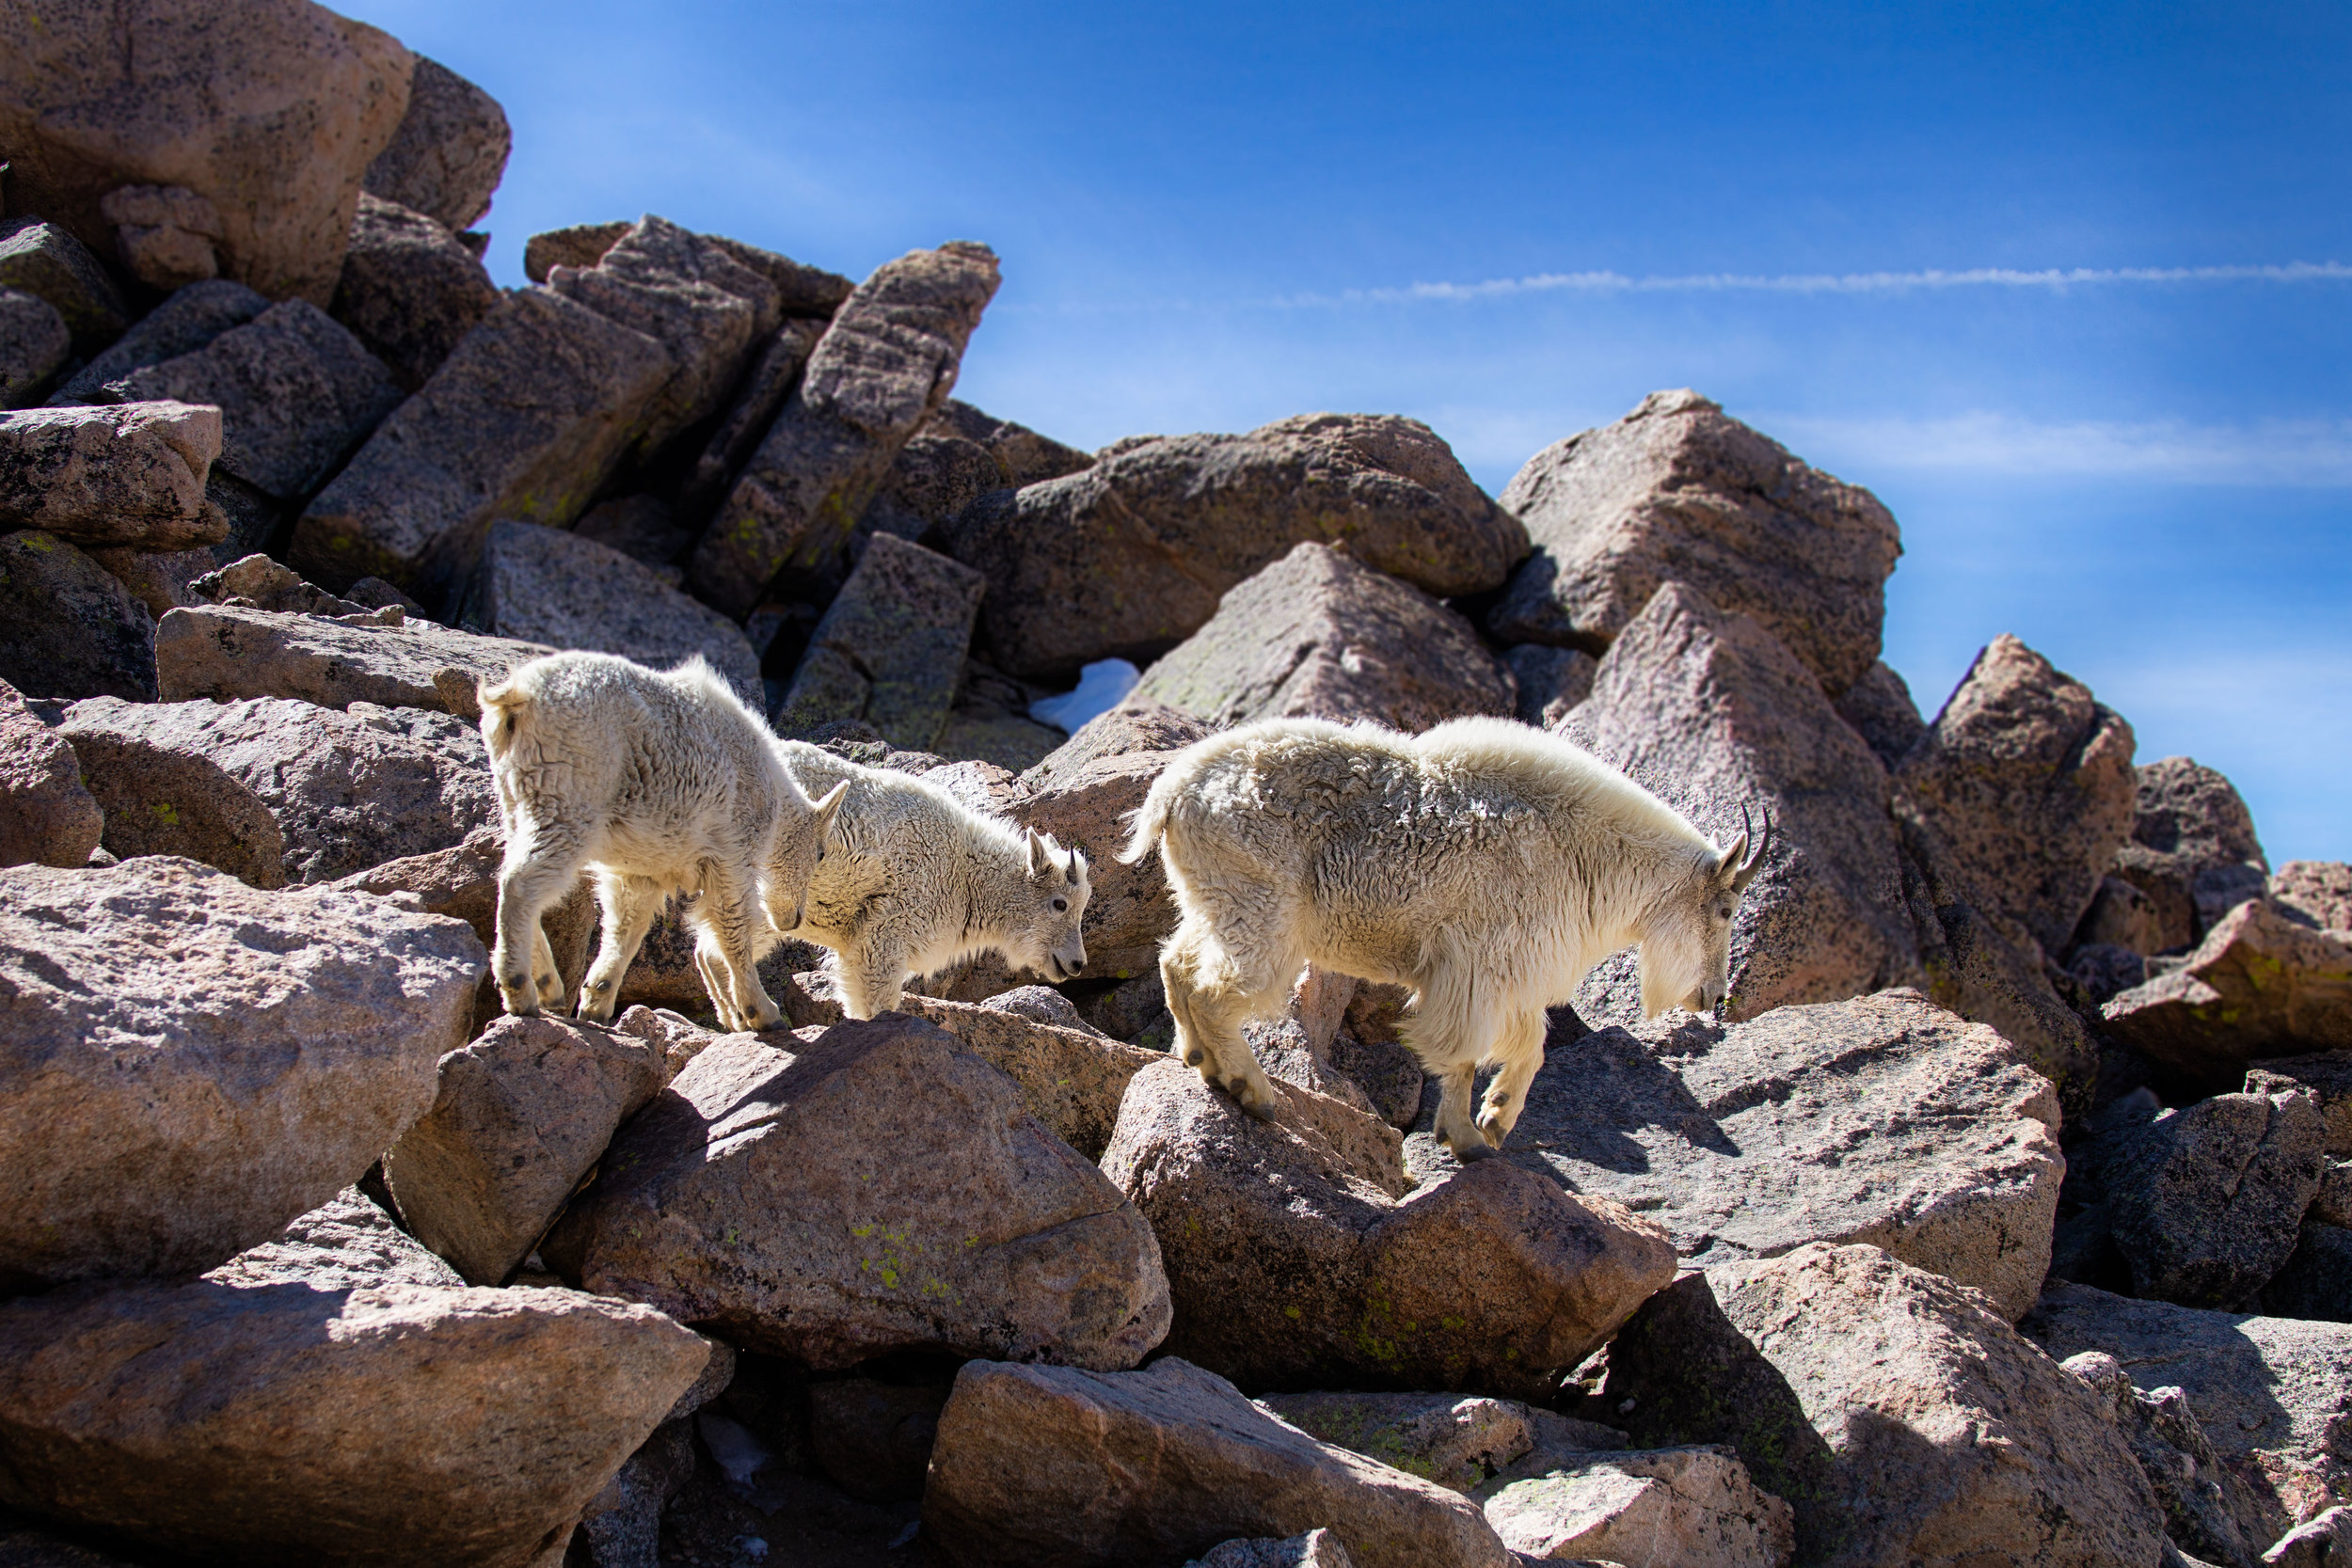 vickygood_travel_photography_colorado_mt.evans_goats5.jpg